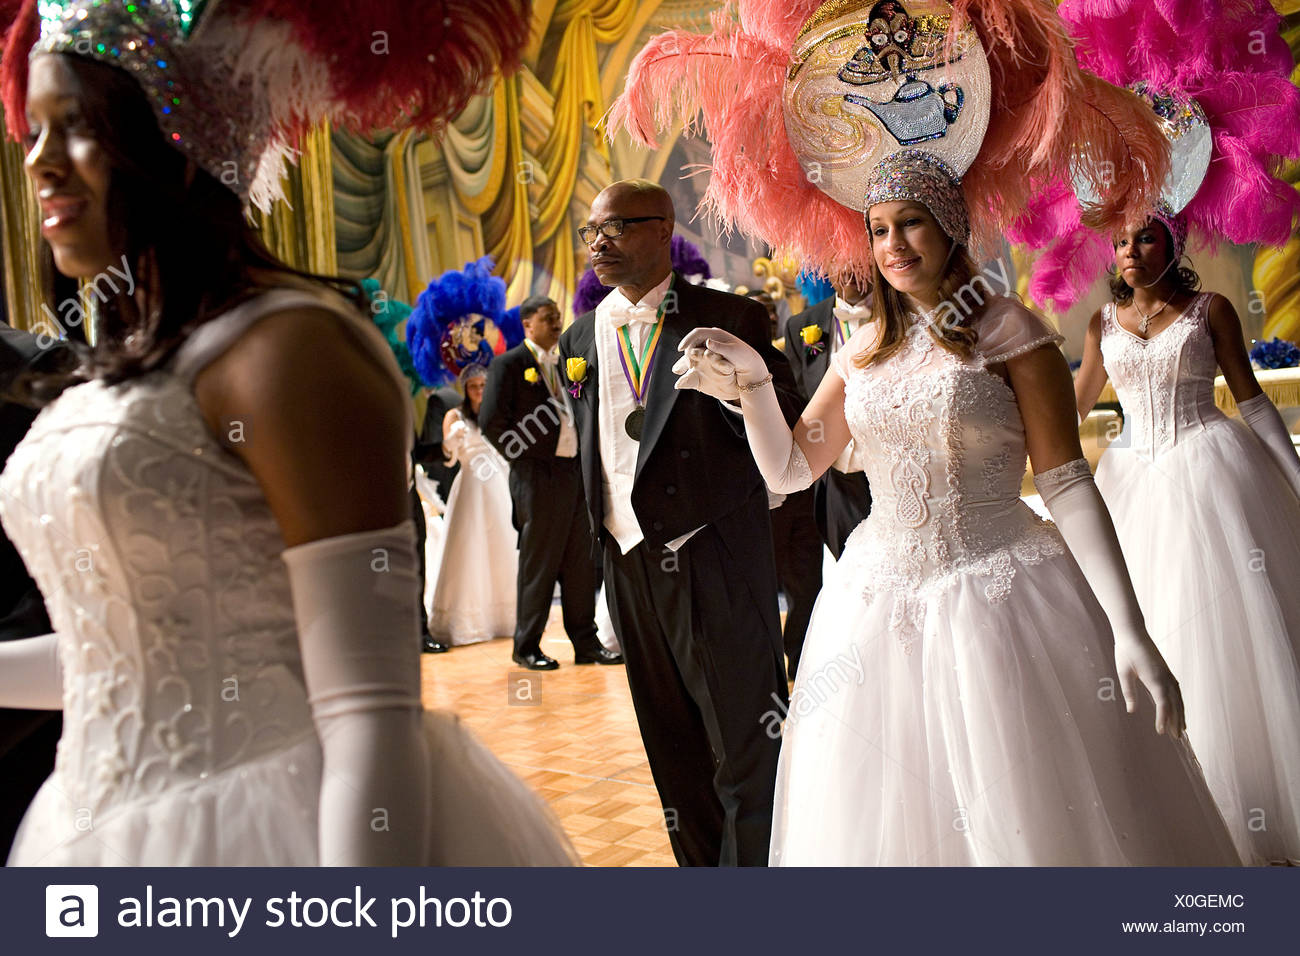 Ball Gowns Stock Photos & Ball Gowns Stock Images - Page 3 - Alamy